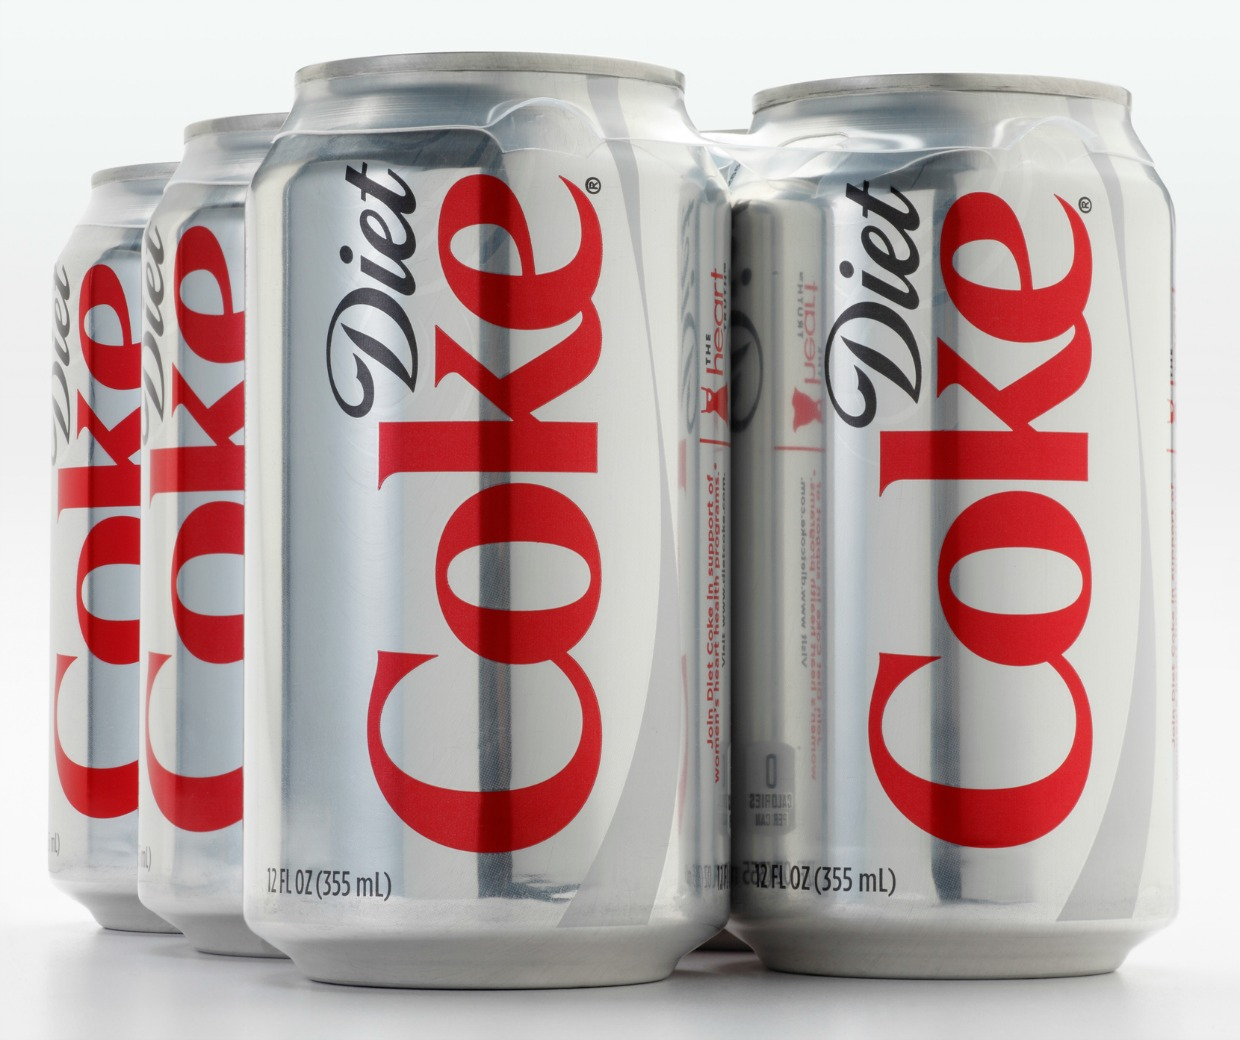 Coca-Cola is making massive changes to Diet Coke